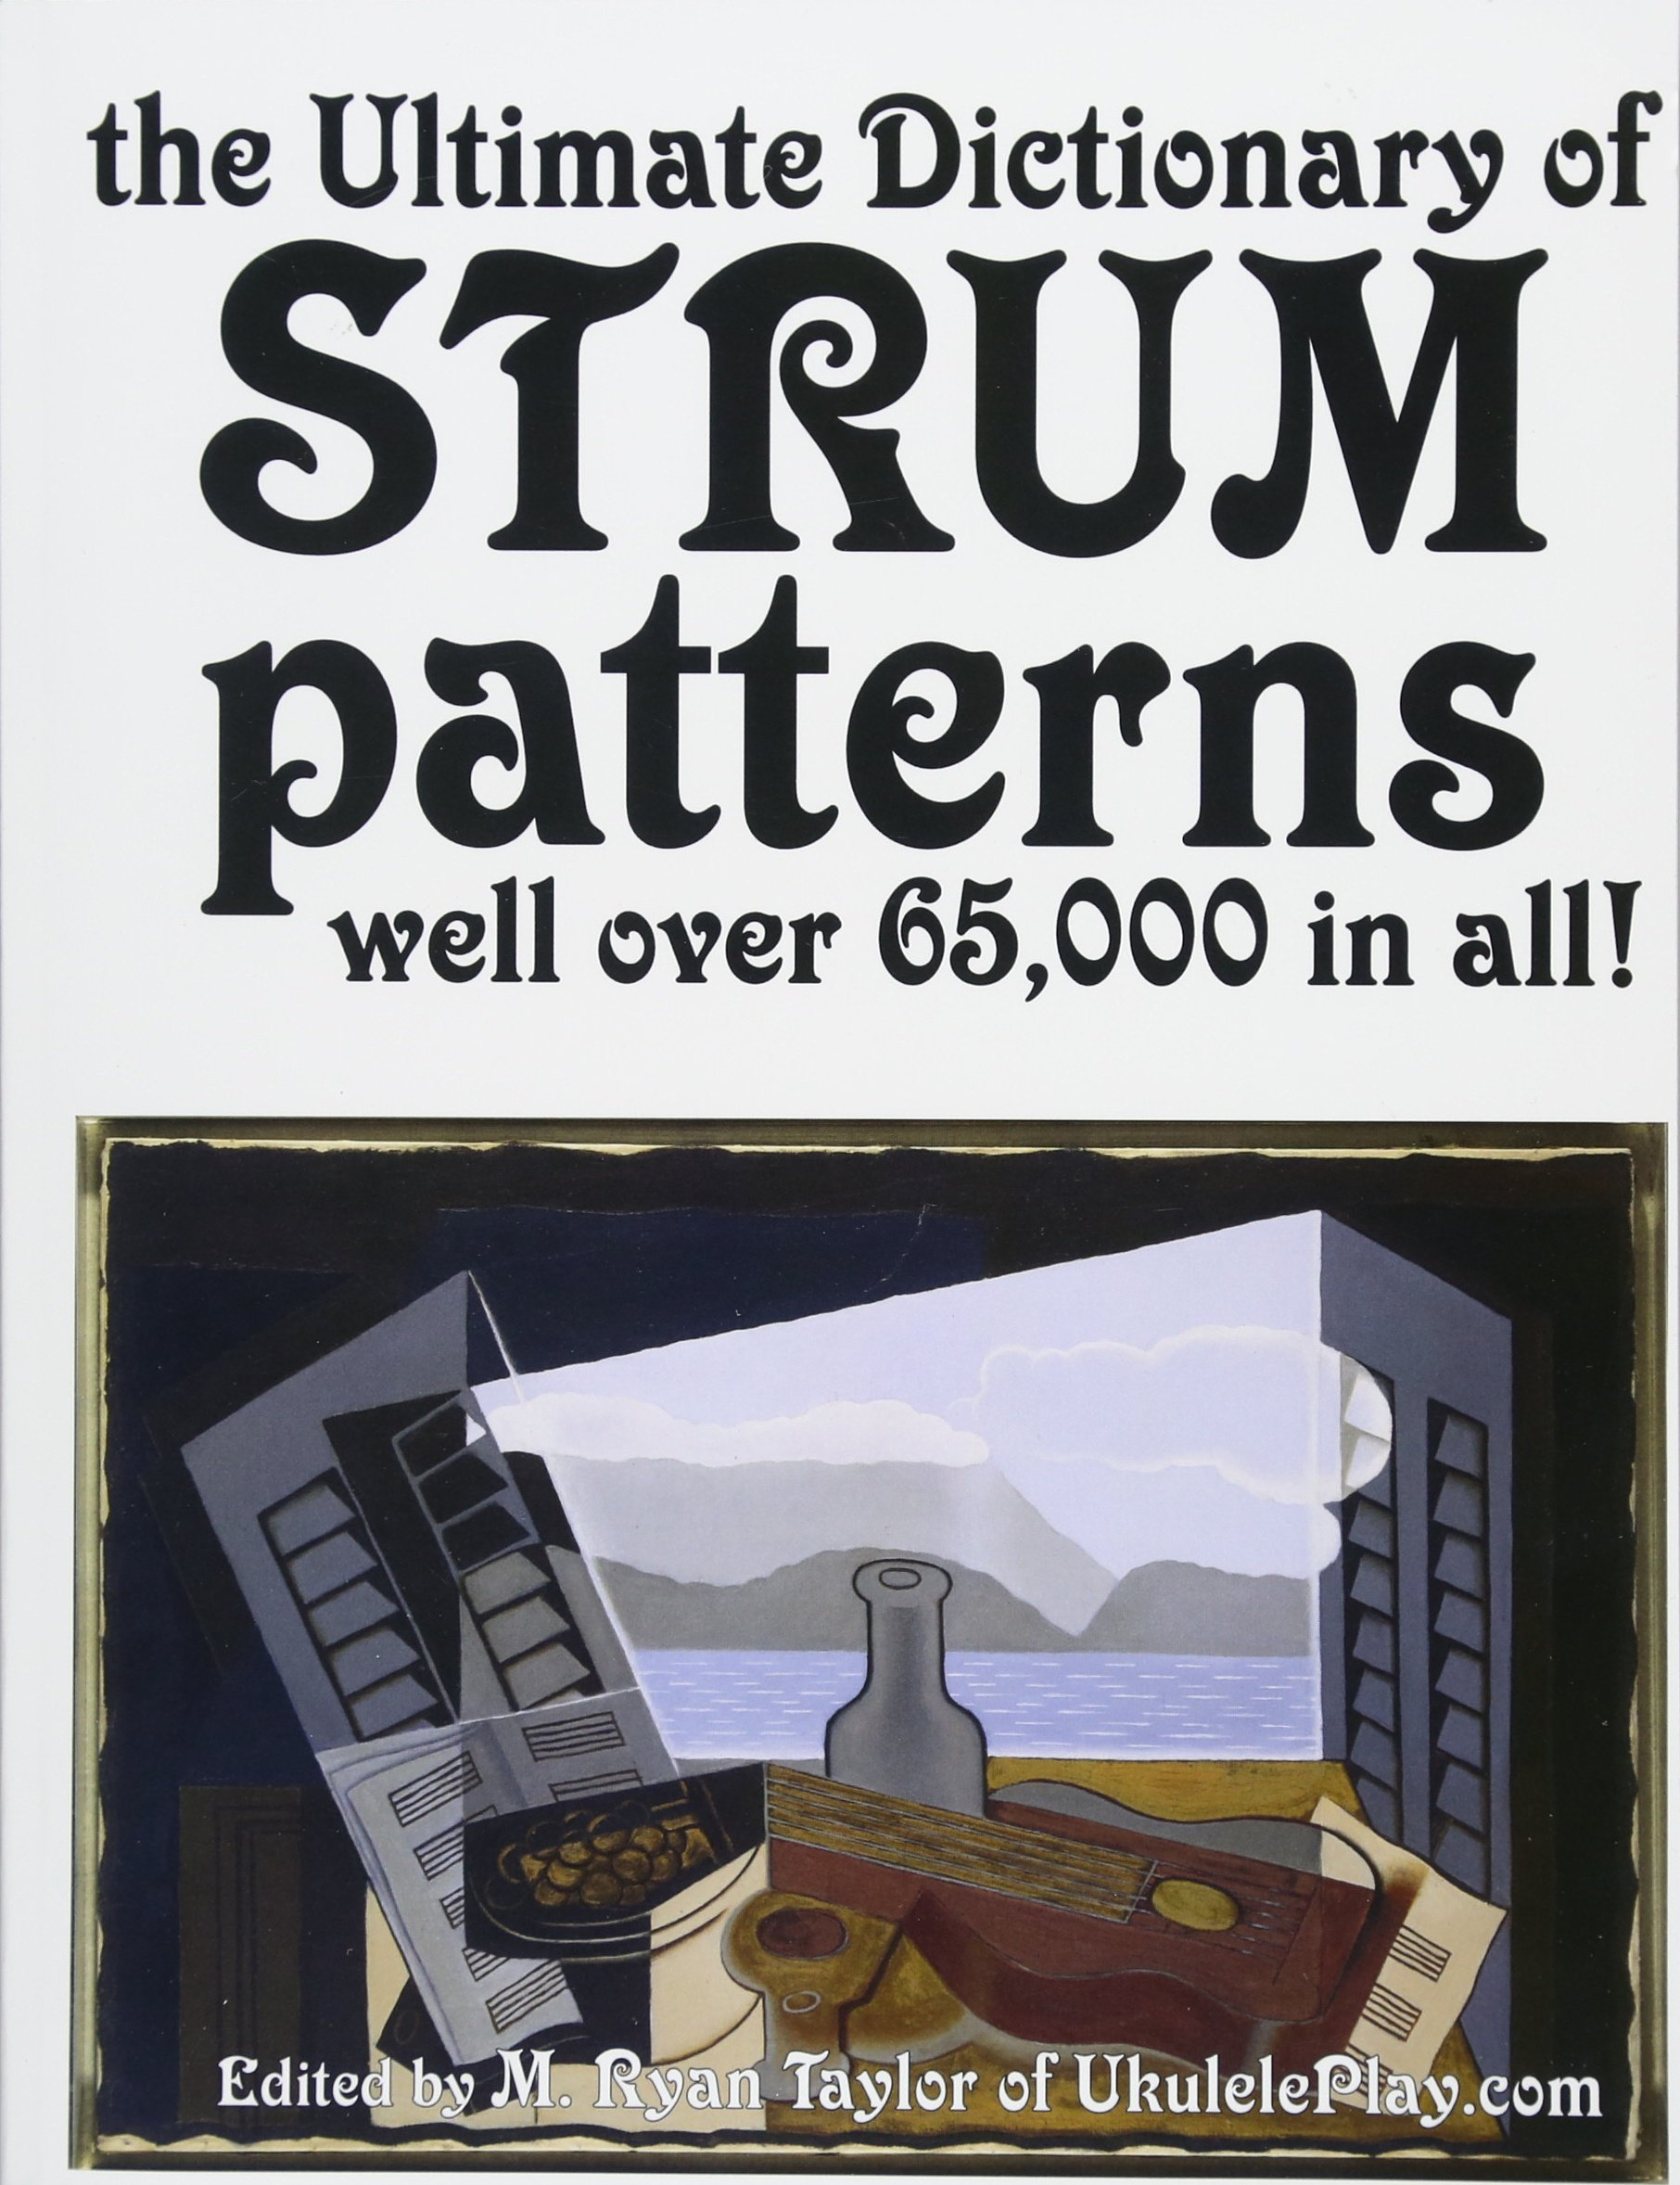 The Ultimate Dictionary of Strum Patterns: Well over 65,000 in all! (Strumming Guides) (Volume 1) PDF